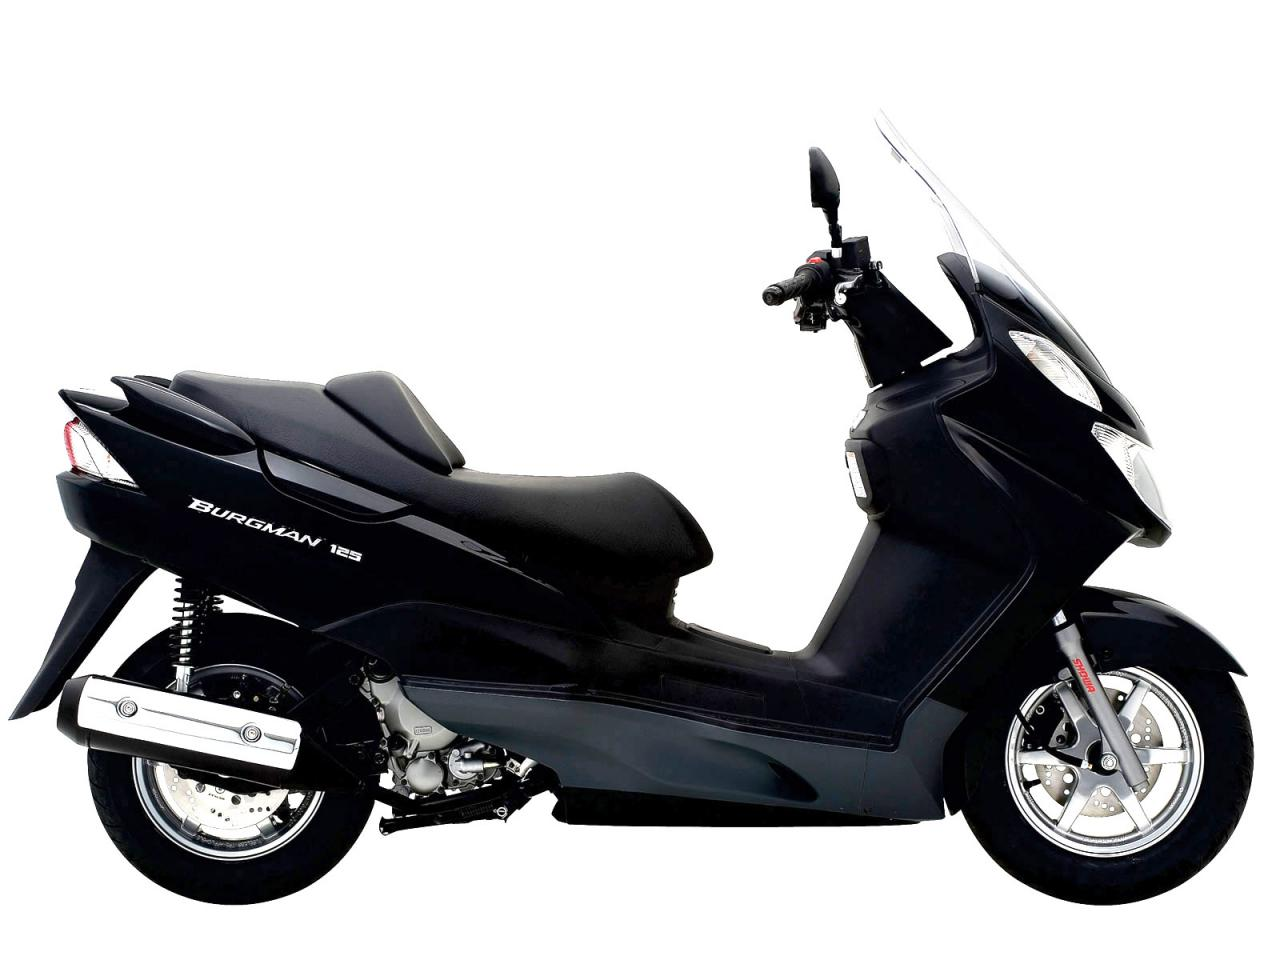 2010 suzuki burgman 125 g moto zombdrive com. Black Bedroom Furniture Sets. Home Design Ideas